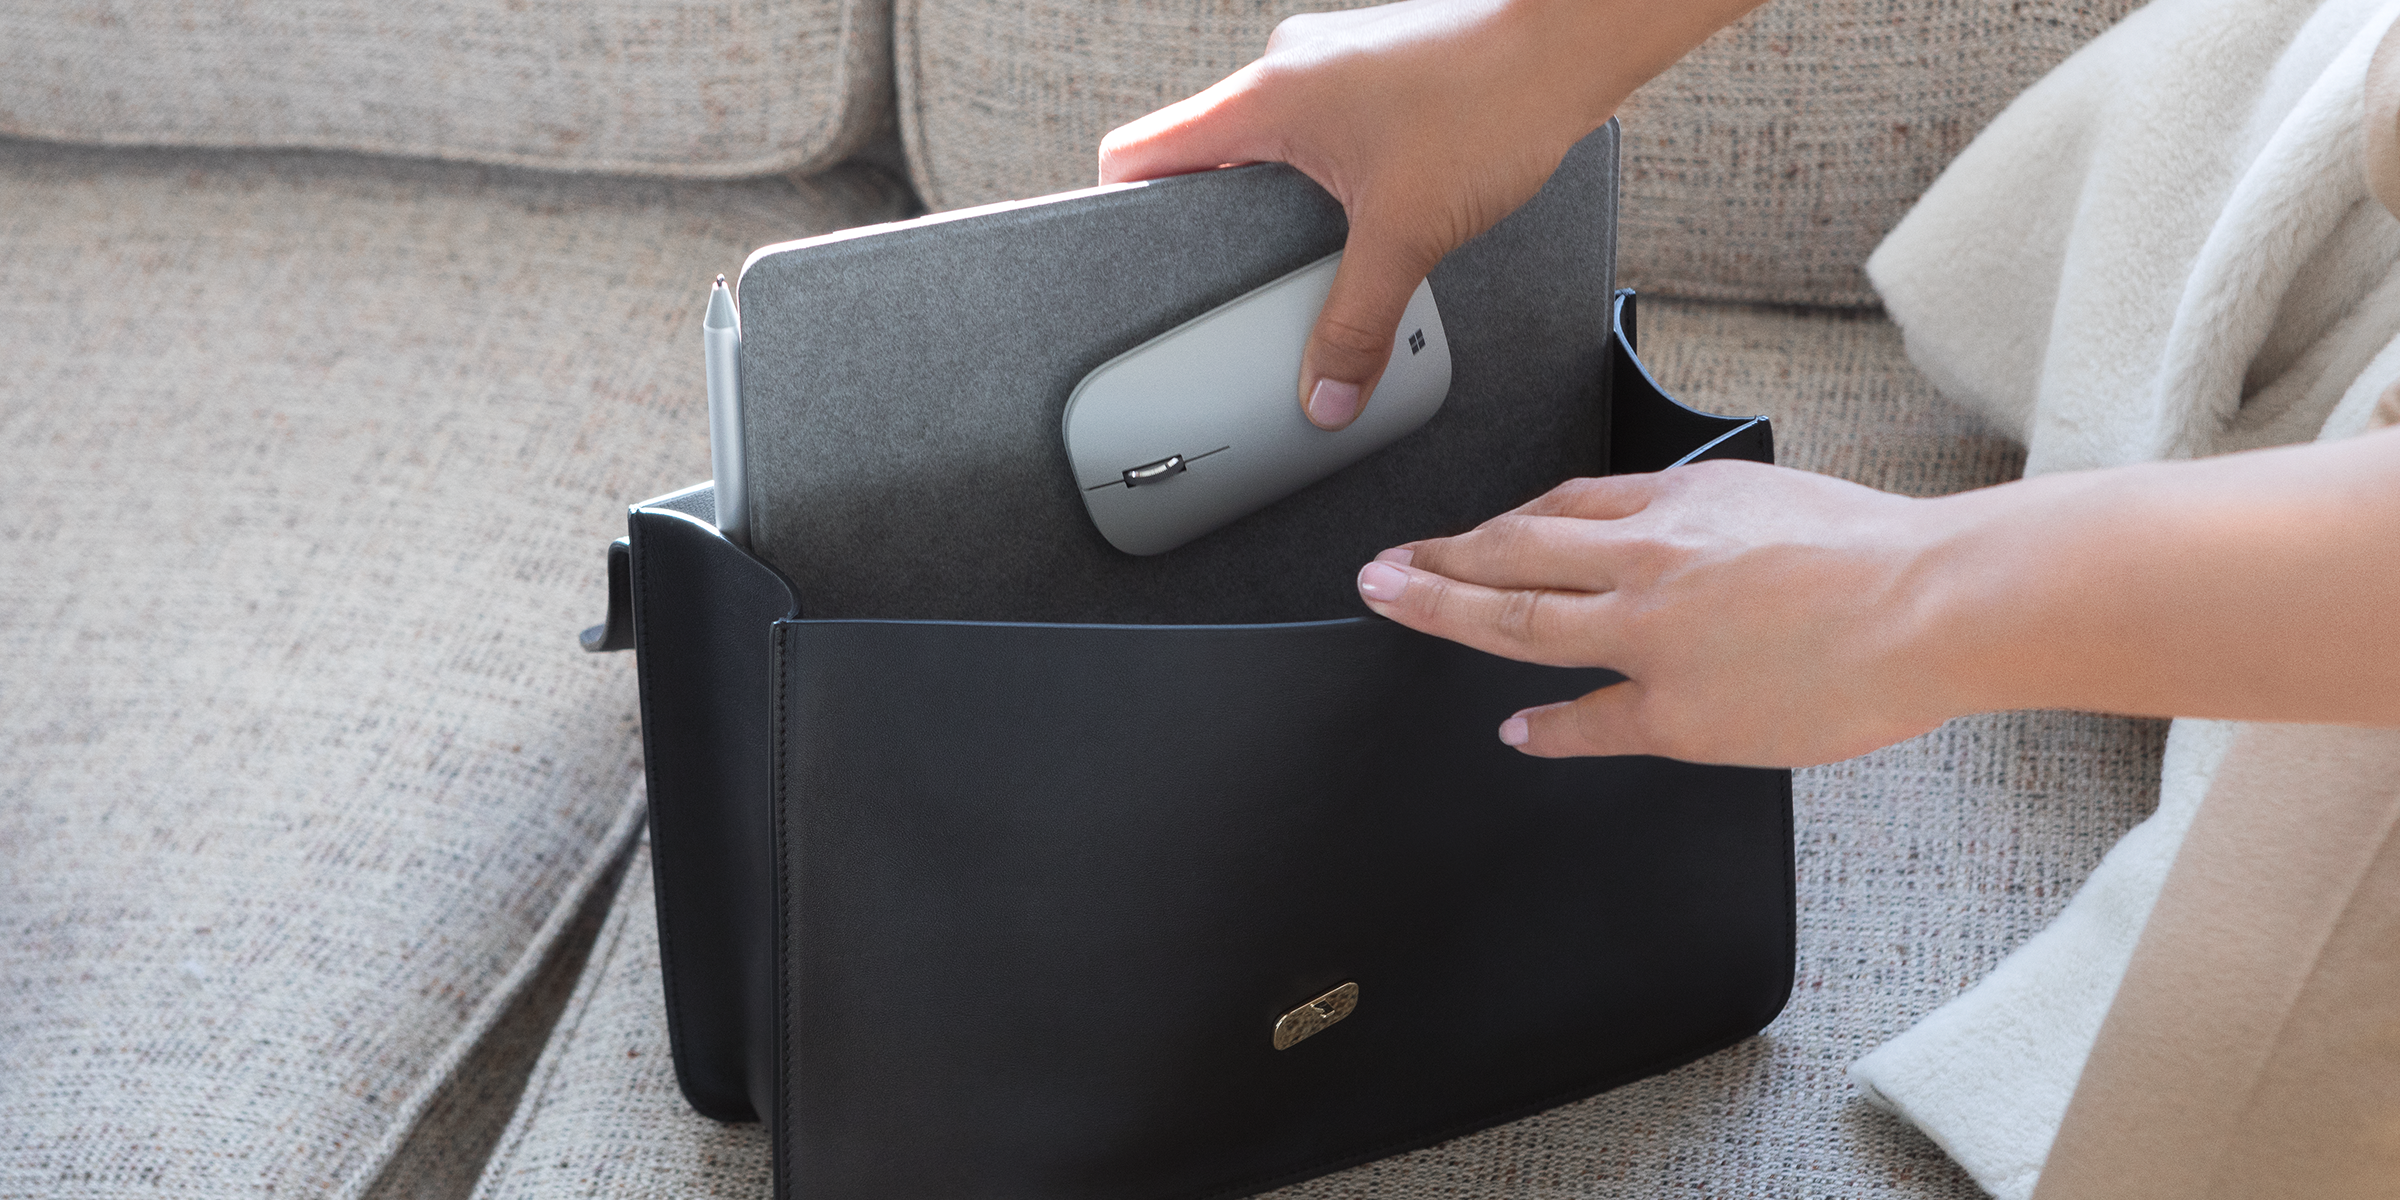 A woman puts Surface Lingo and Surface Mobile Mouse in her purse